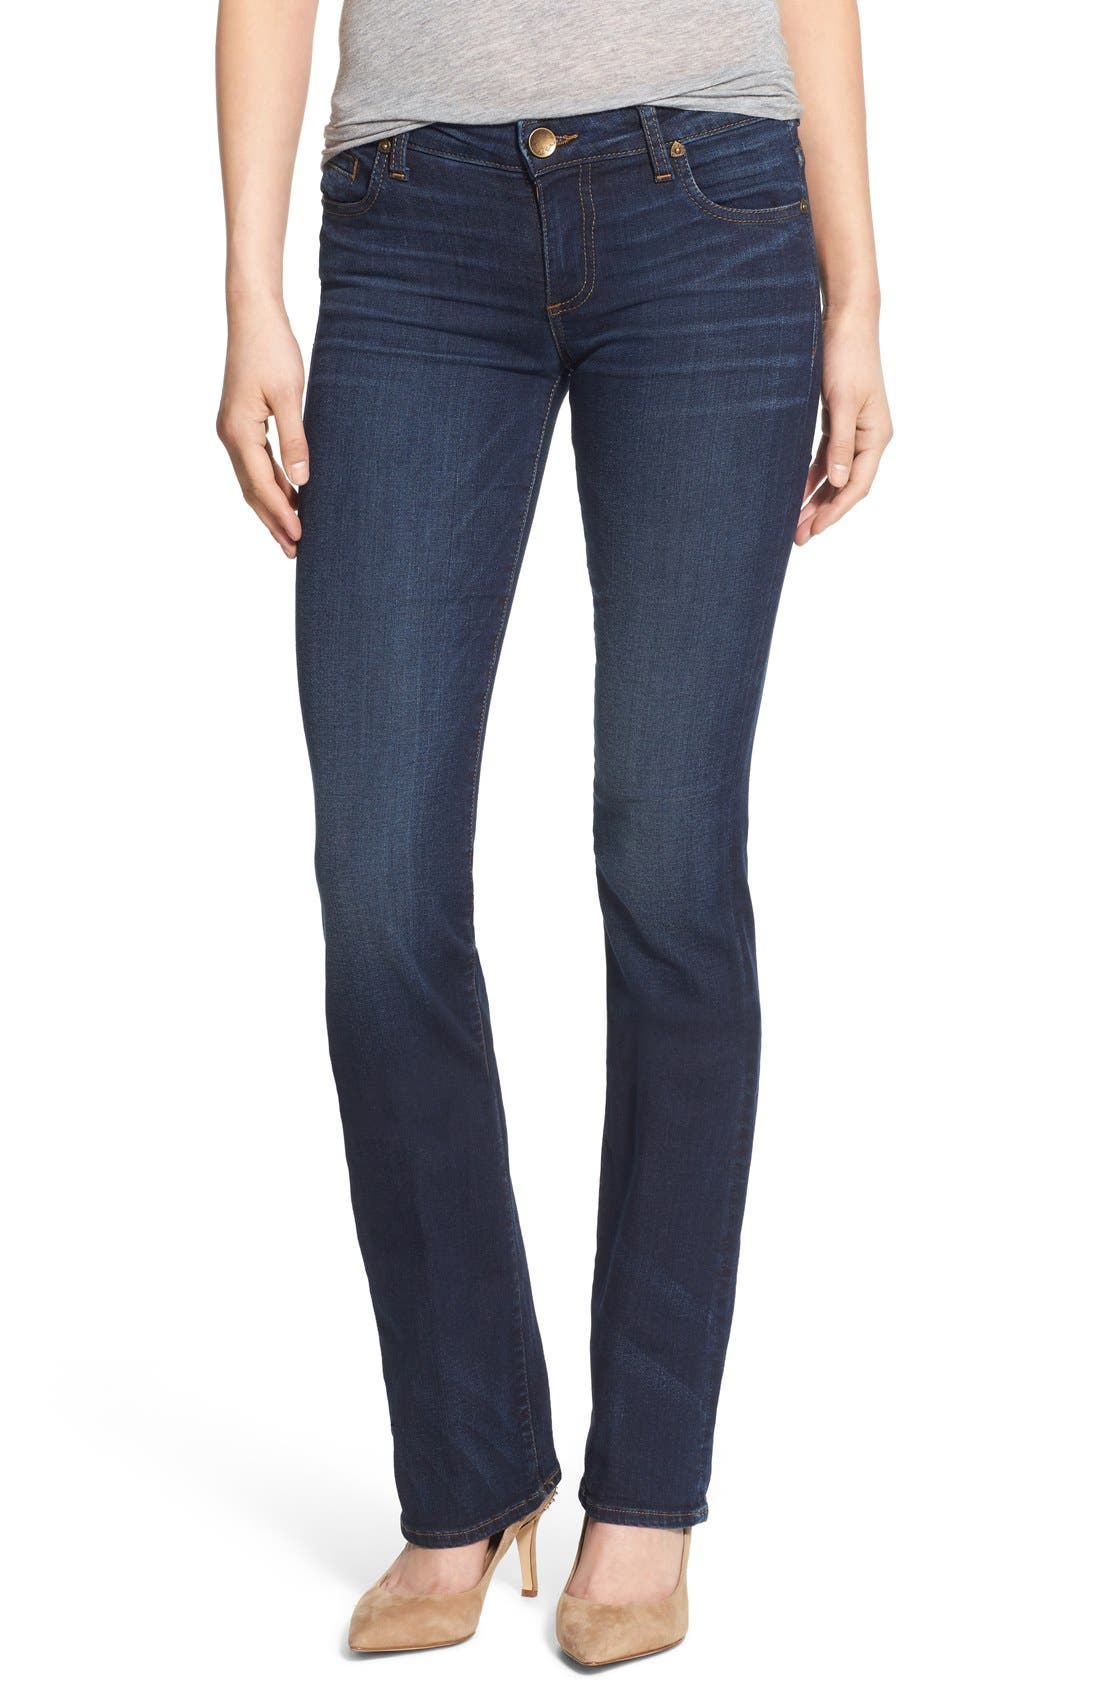 Main Image - KUT from the Kloth 'Natalie' Stretch Bootleg Jeans (Closeness)